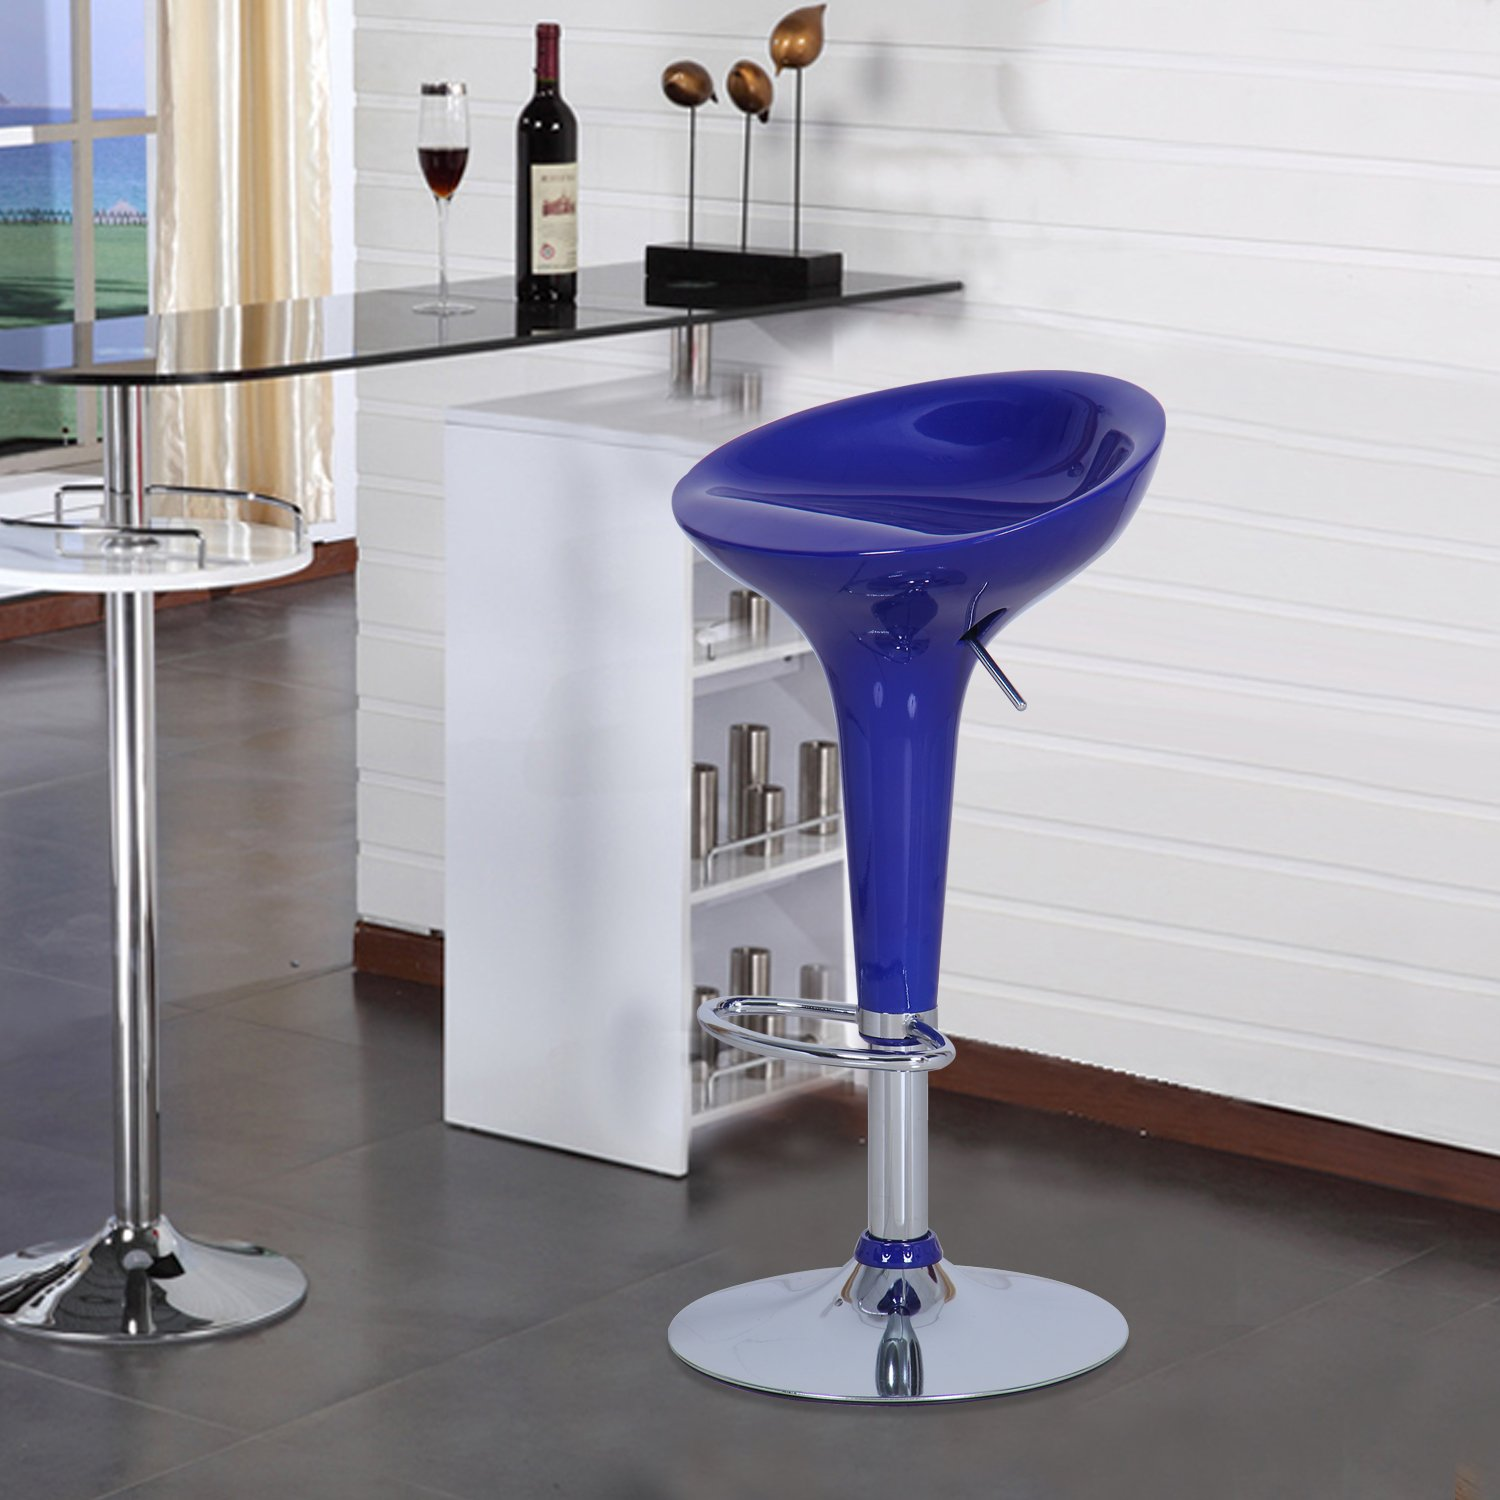 Joveco Stylish Colorful Swivel Adjustable Bar Stools blue – Set of 2